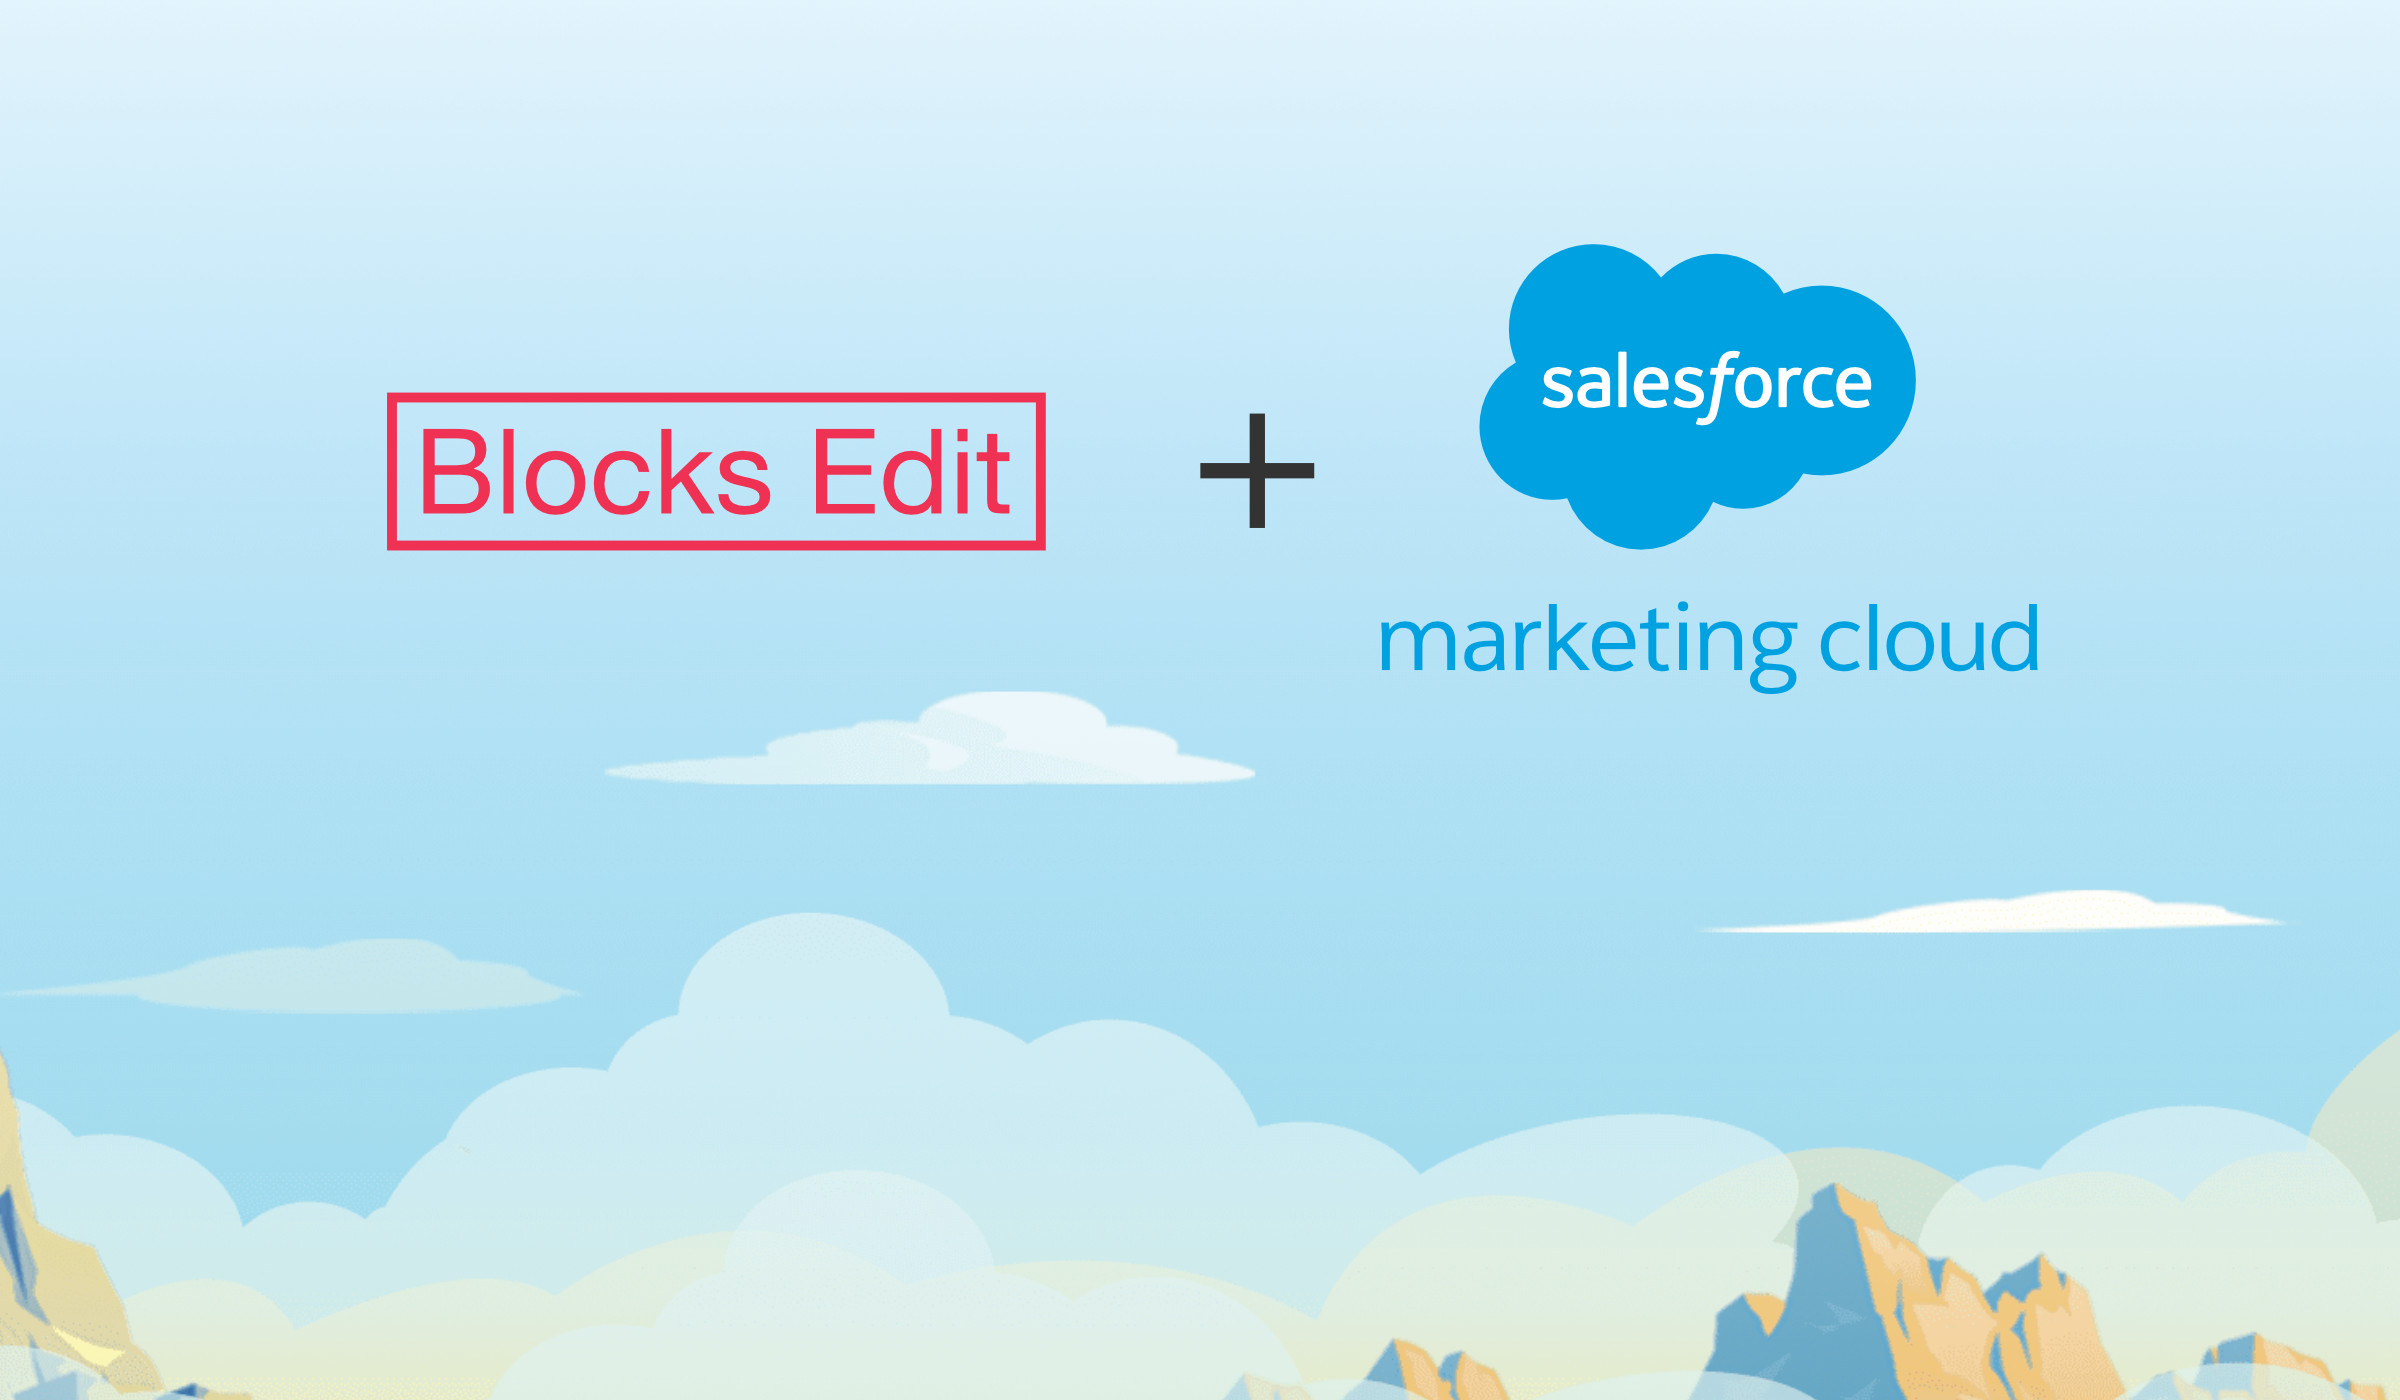 Blocks Edit update: Salesforce Marketing Cloud integration